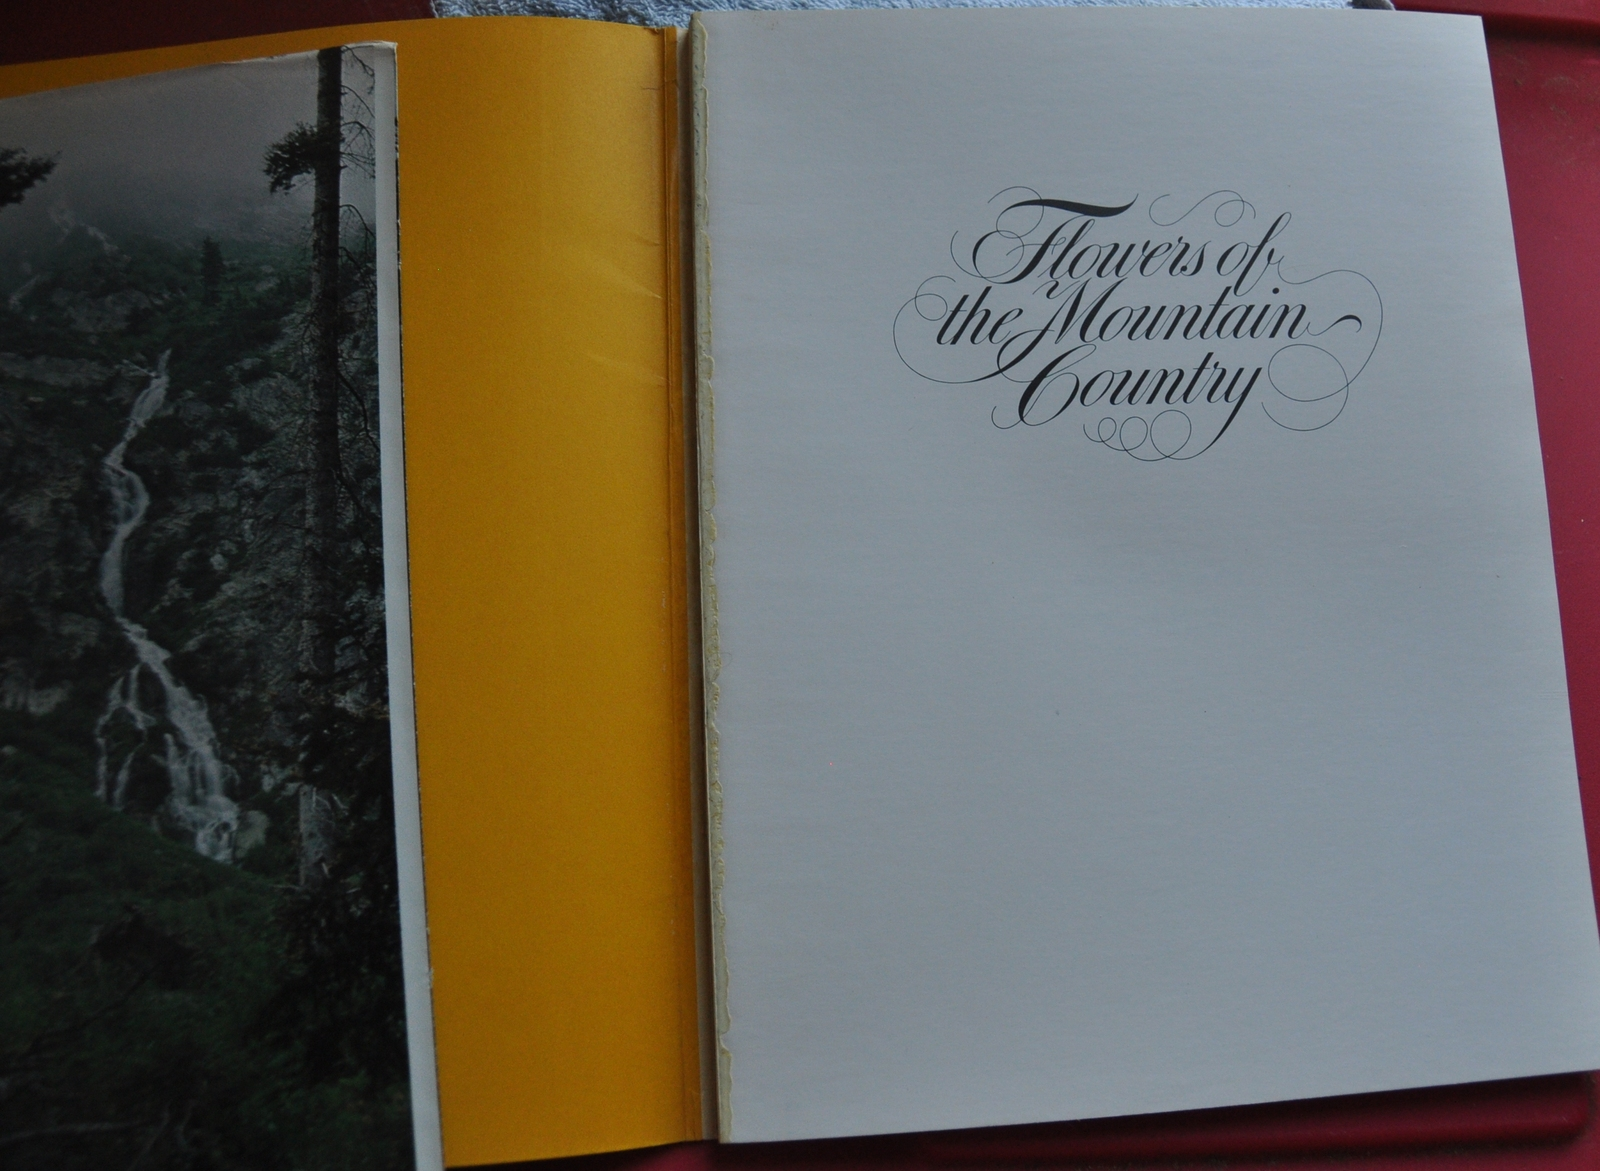 Photography of Bill Ratcliffe -Rare Vintage Book Flowers of the Mountain Country